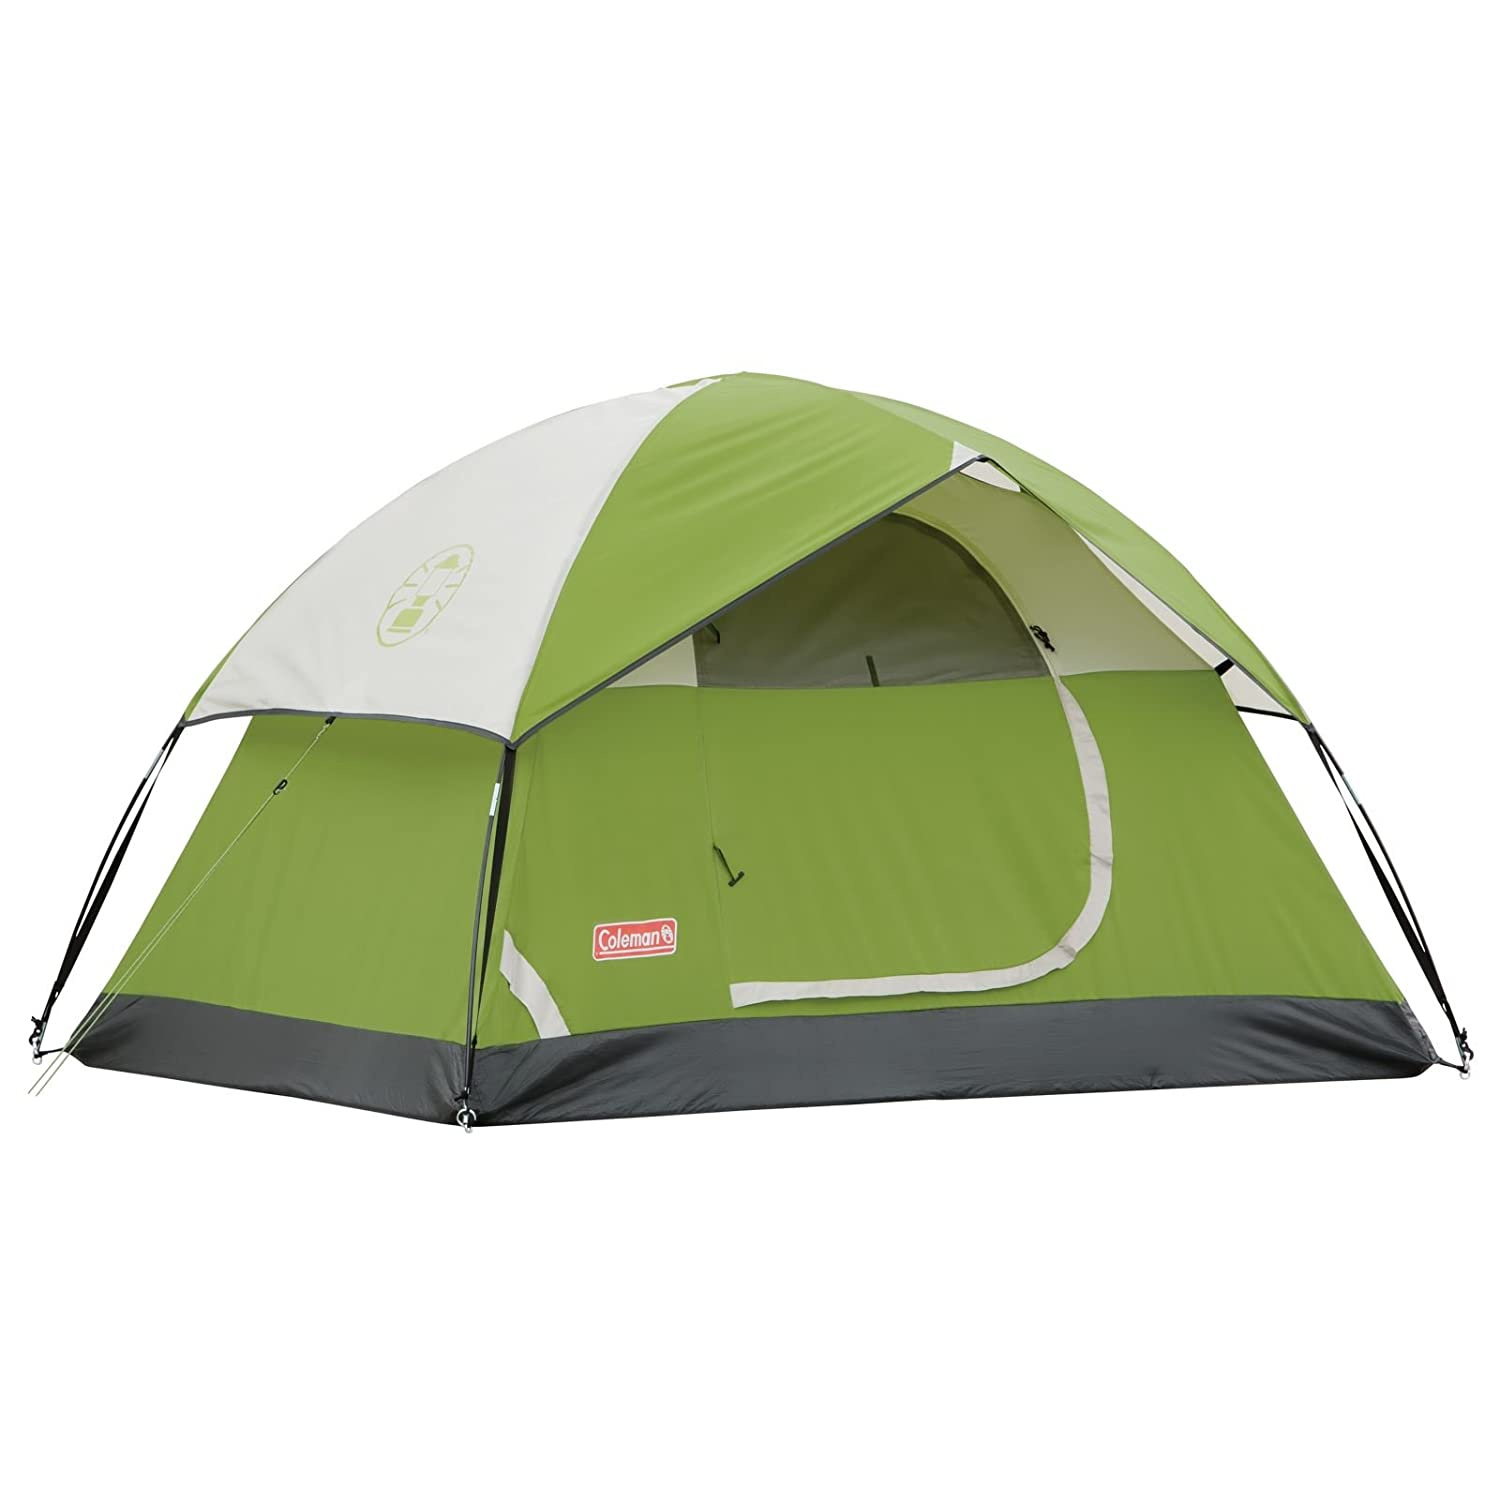 Coleman Sundome 2 Person Camping Tents